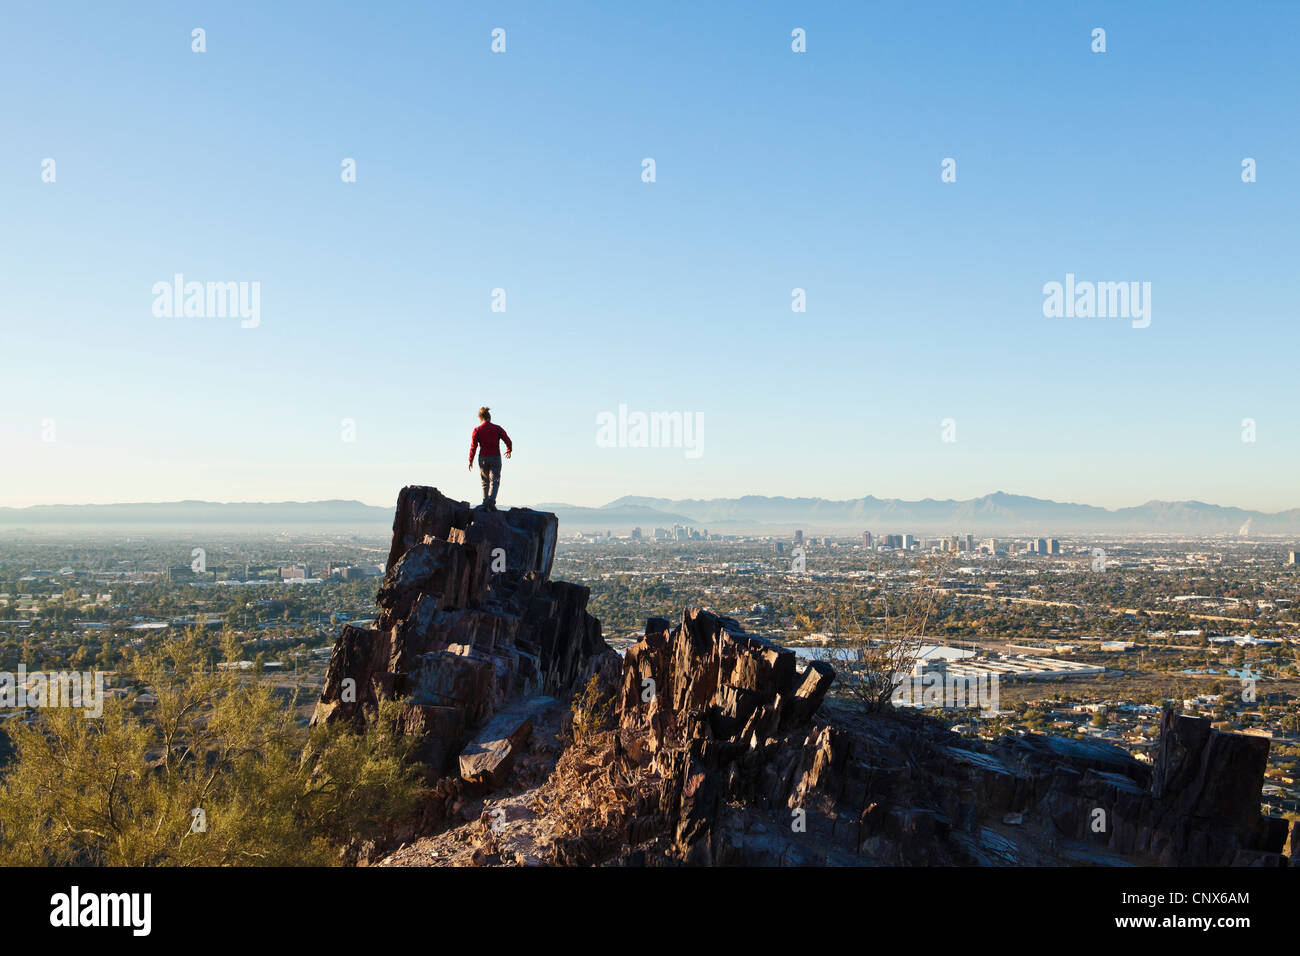 A woman atop a rocky outcrop on Piestewa Peak overlooking Phoenix, Arizona / The Valley of The Sun. - Stock Image